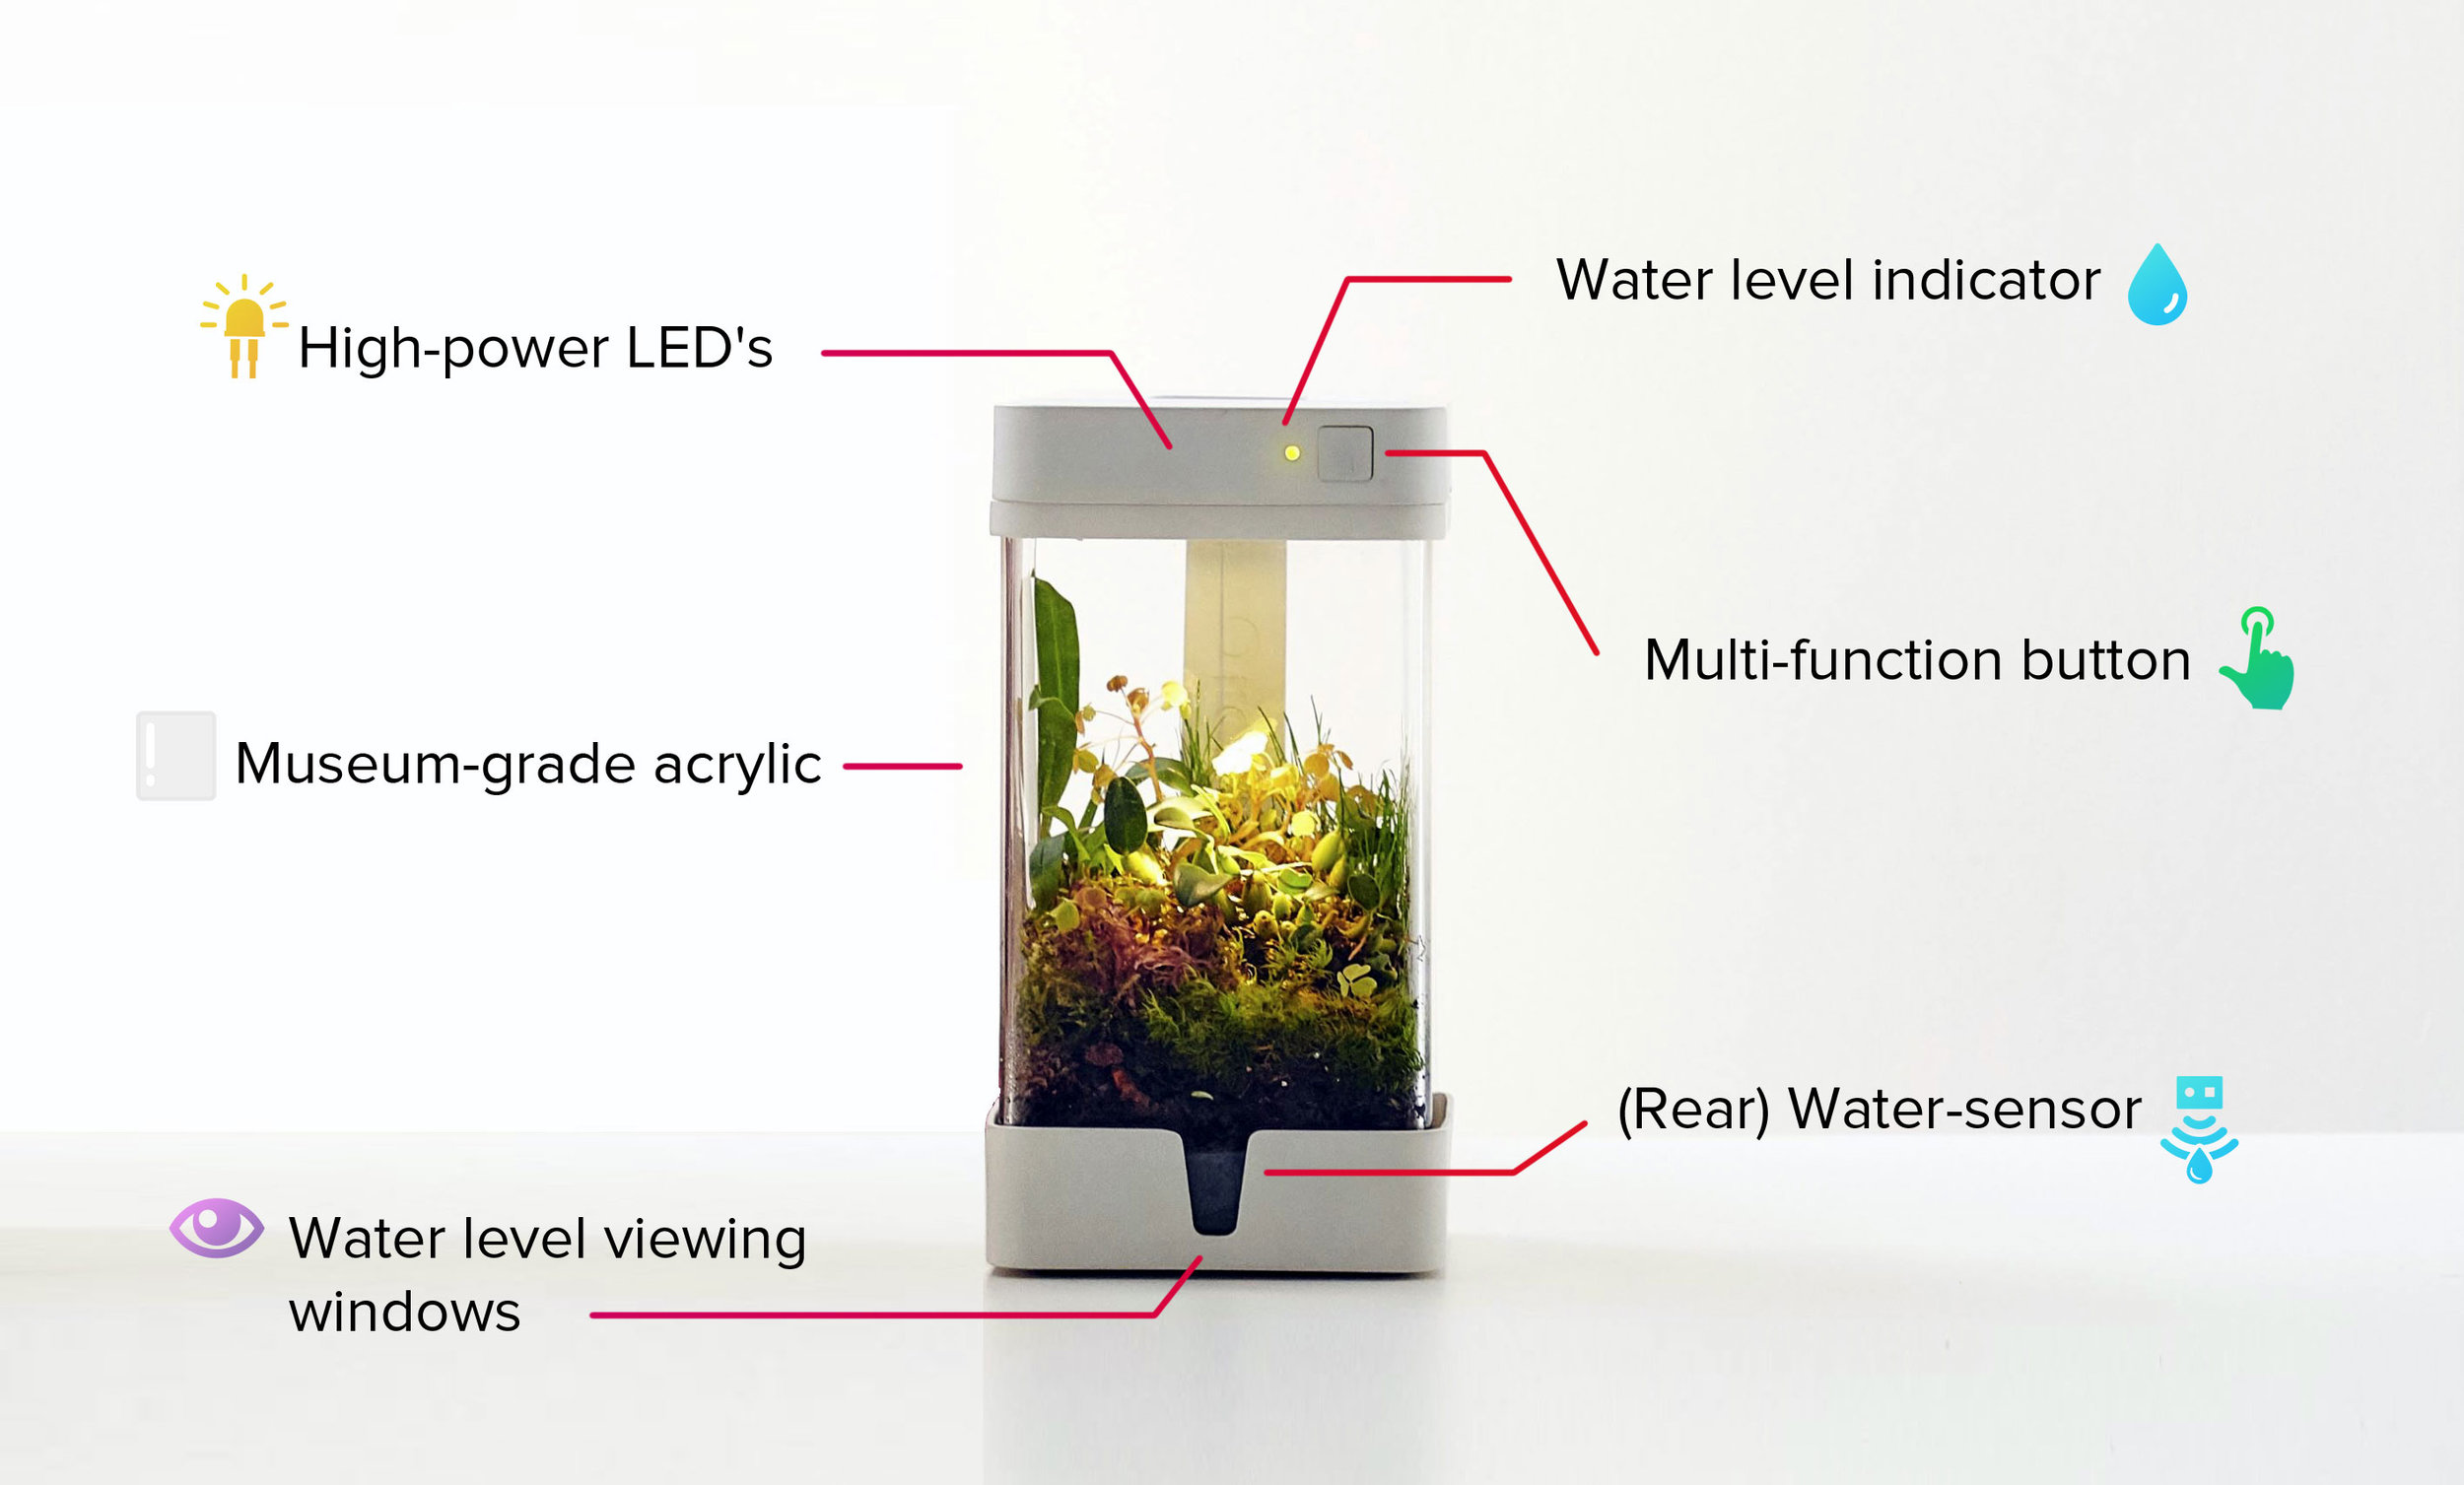 The elements of a self-contained ecosystem